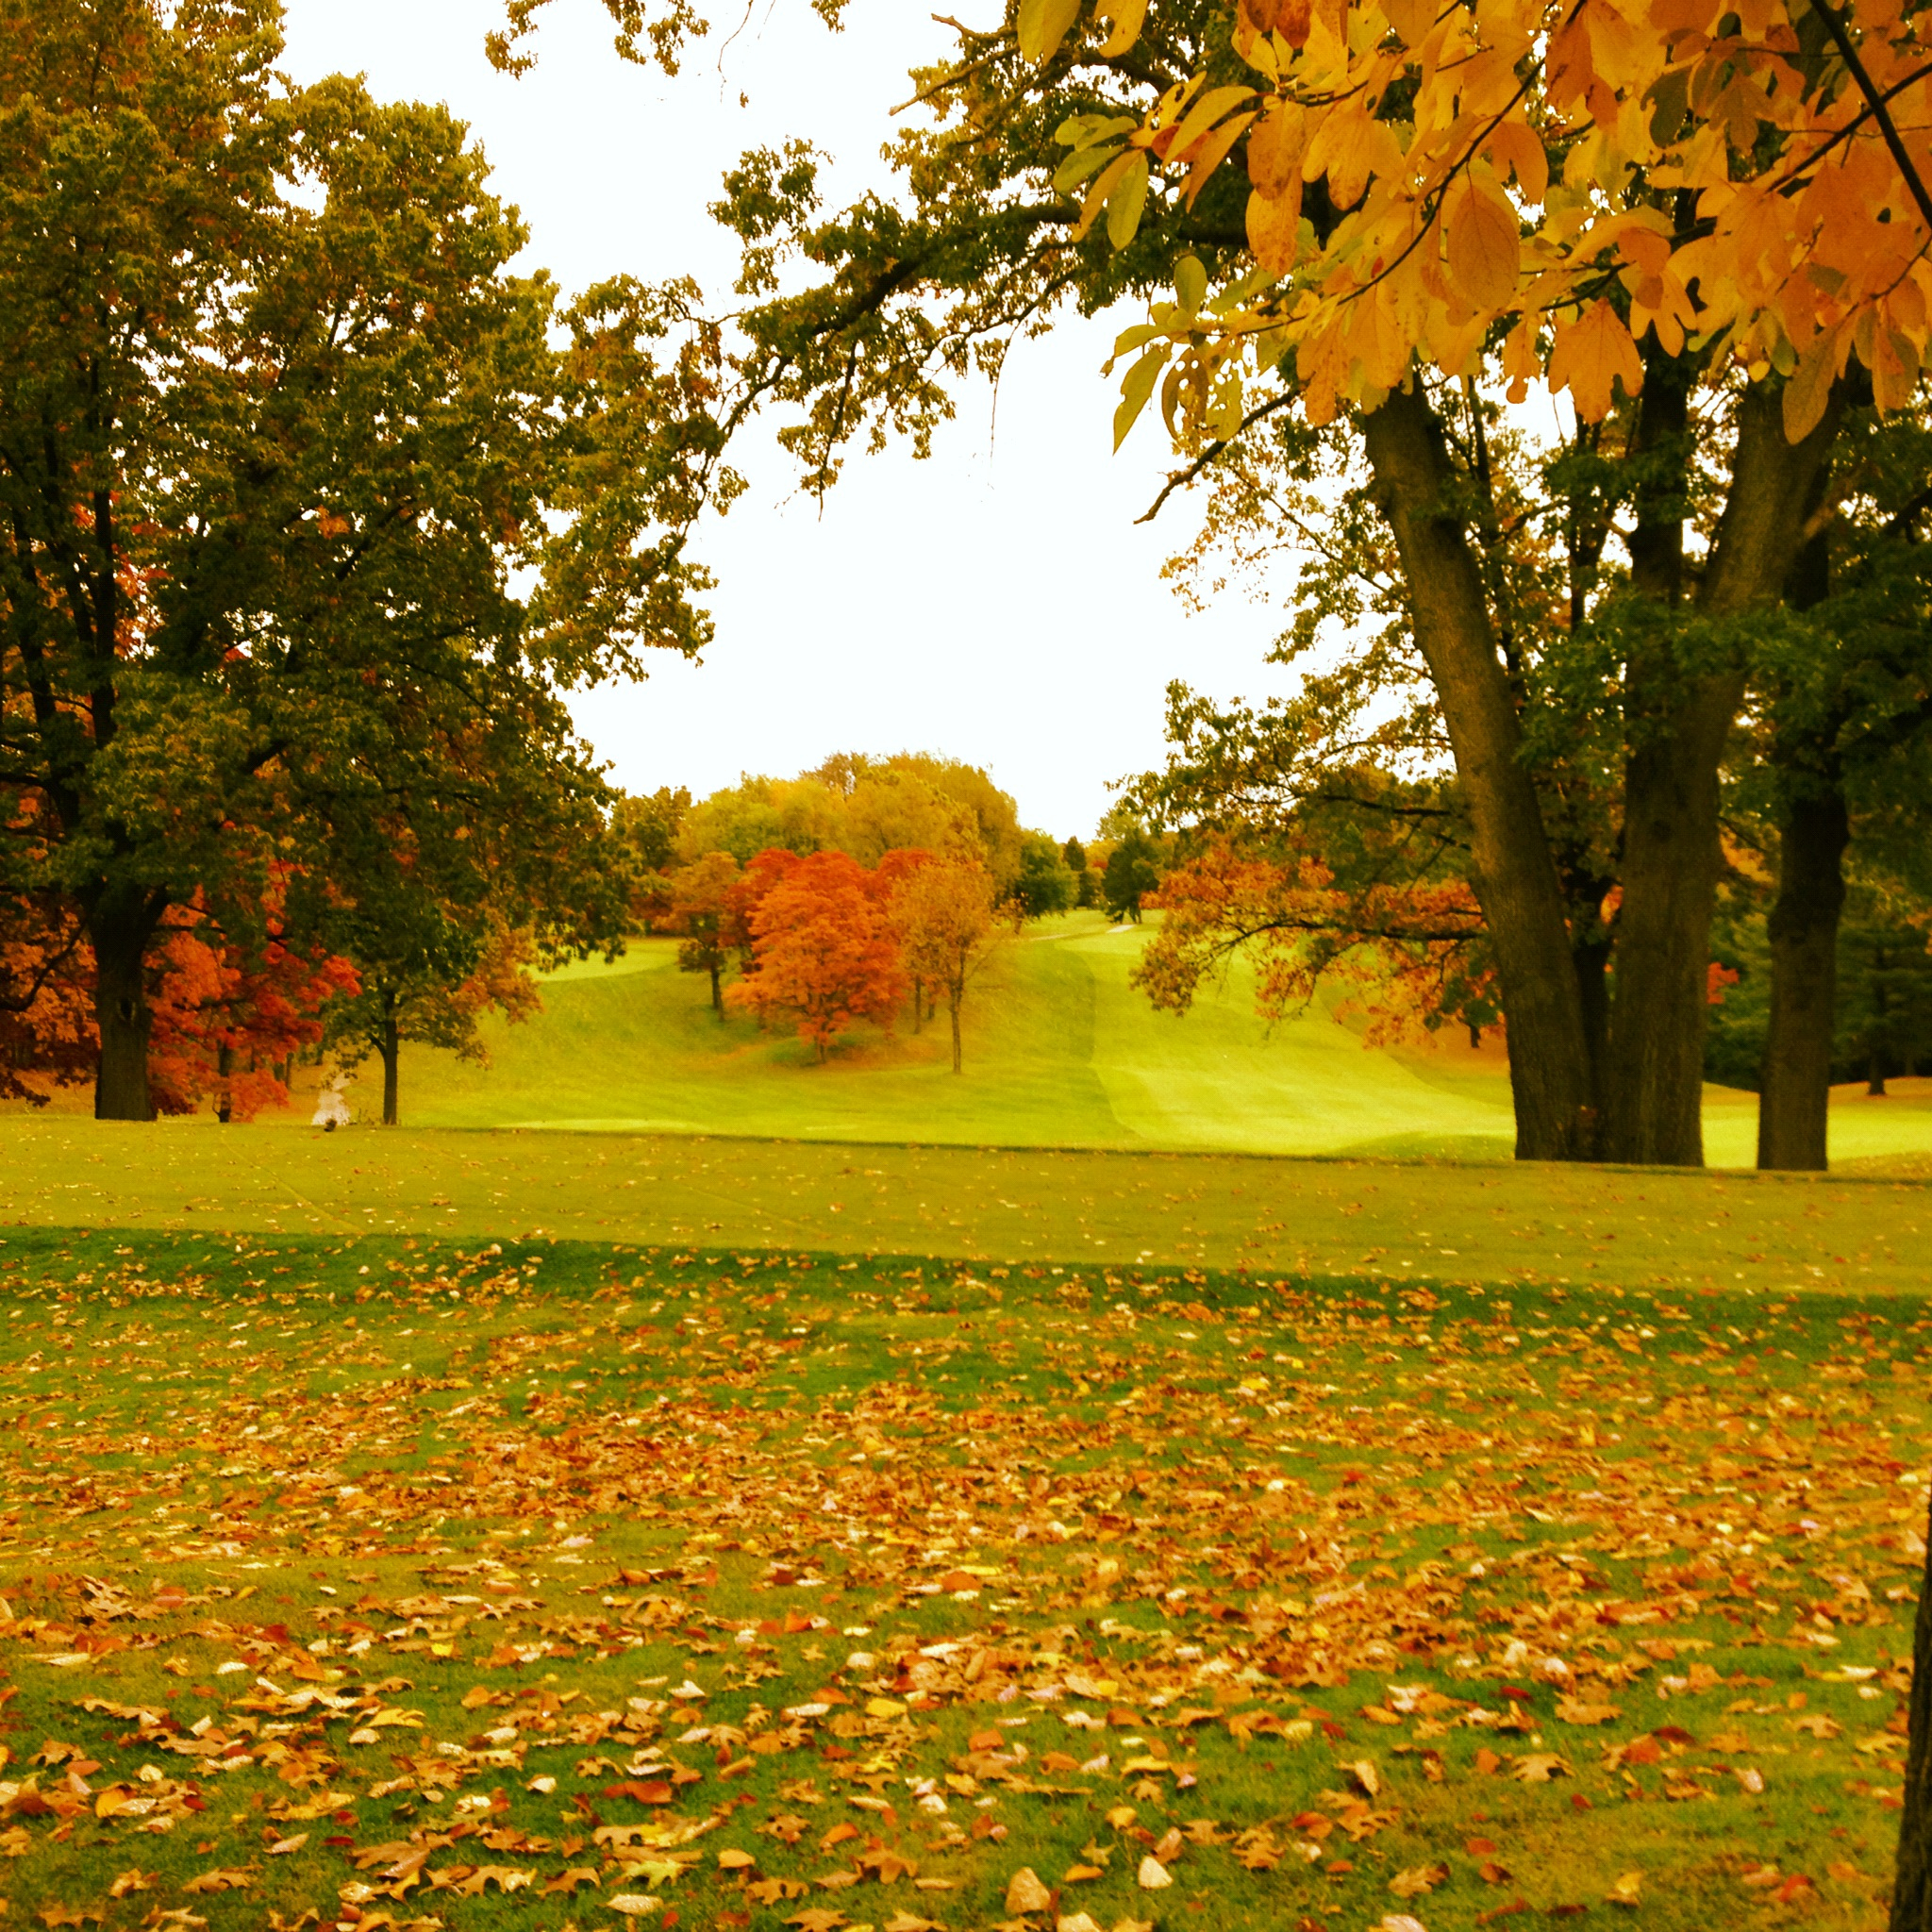 Golf-in-the-fall-wallpaper-wp425772-1